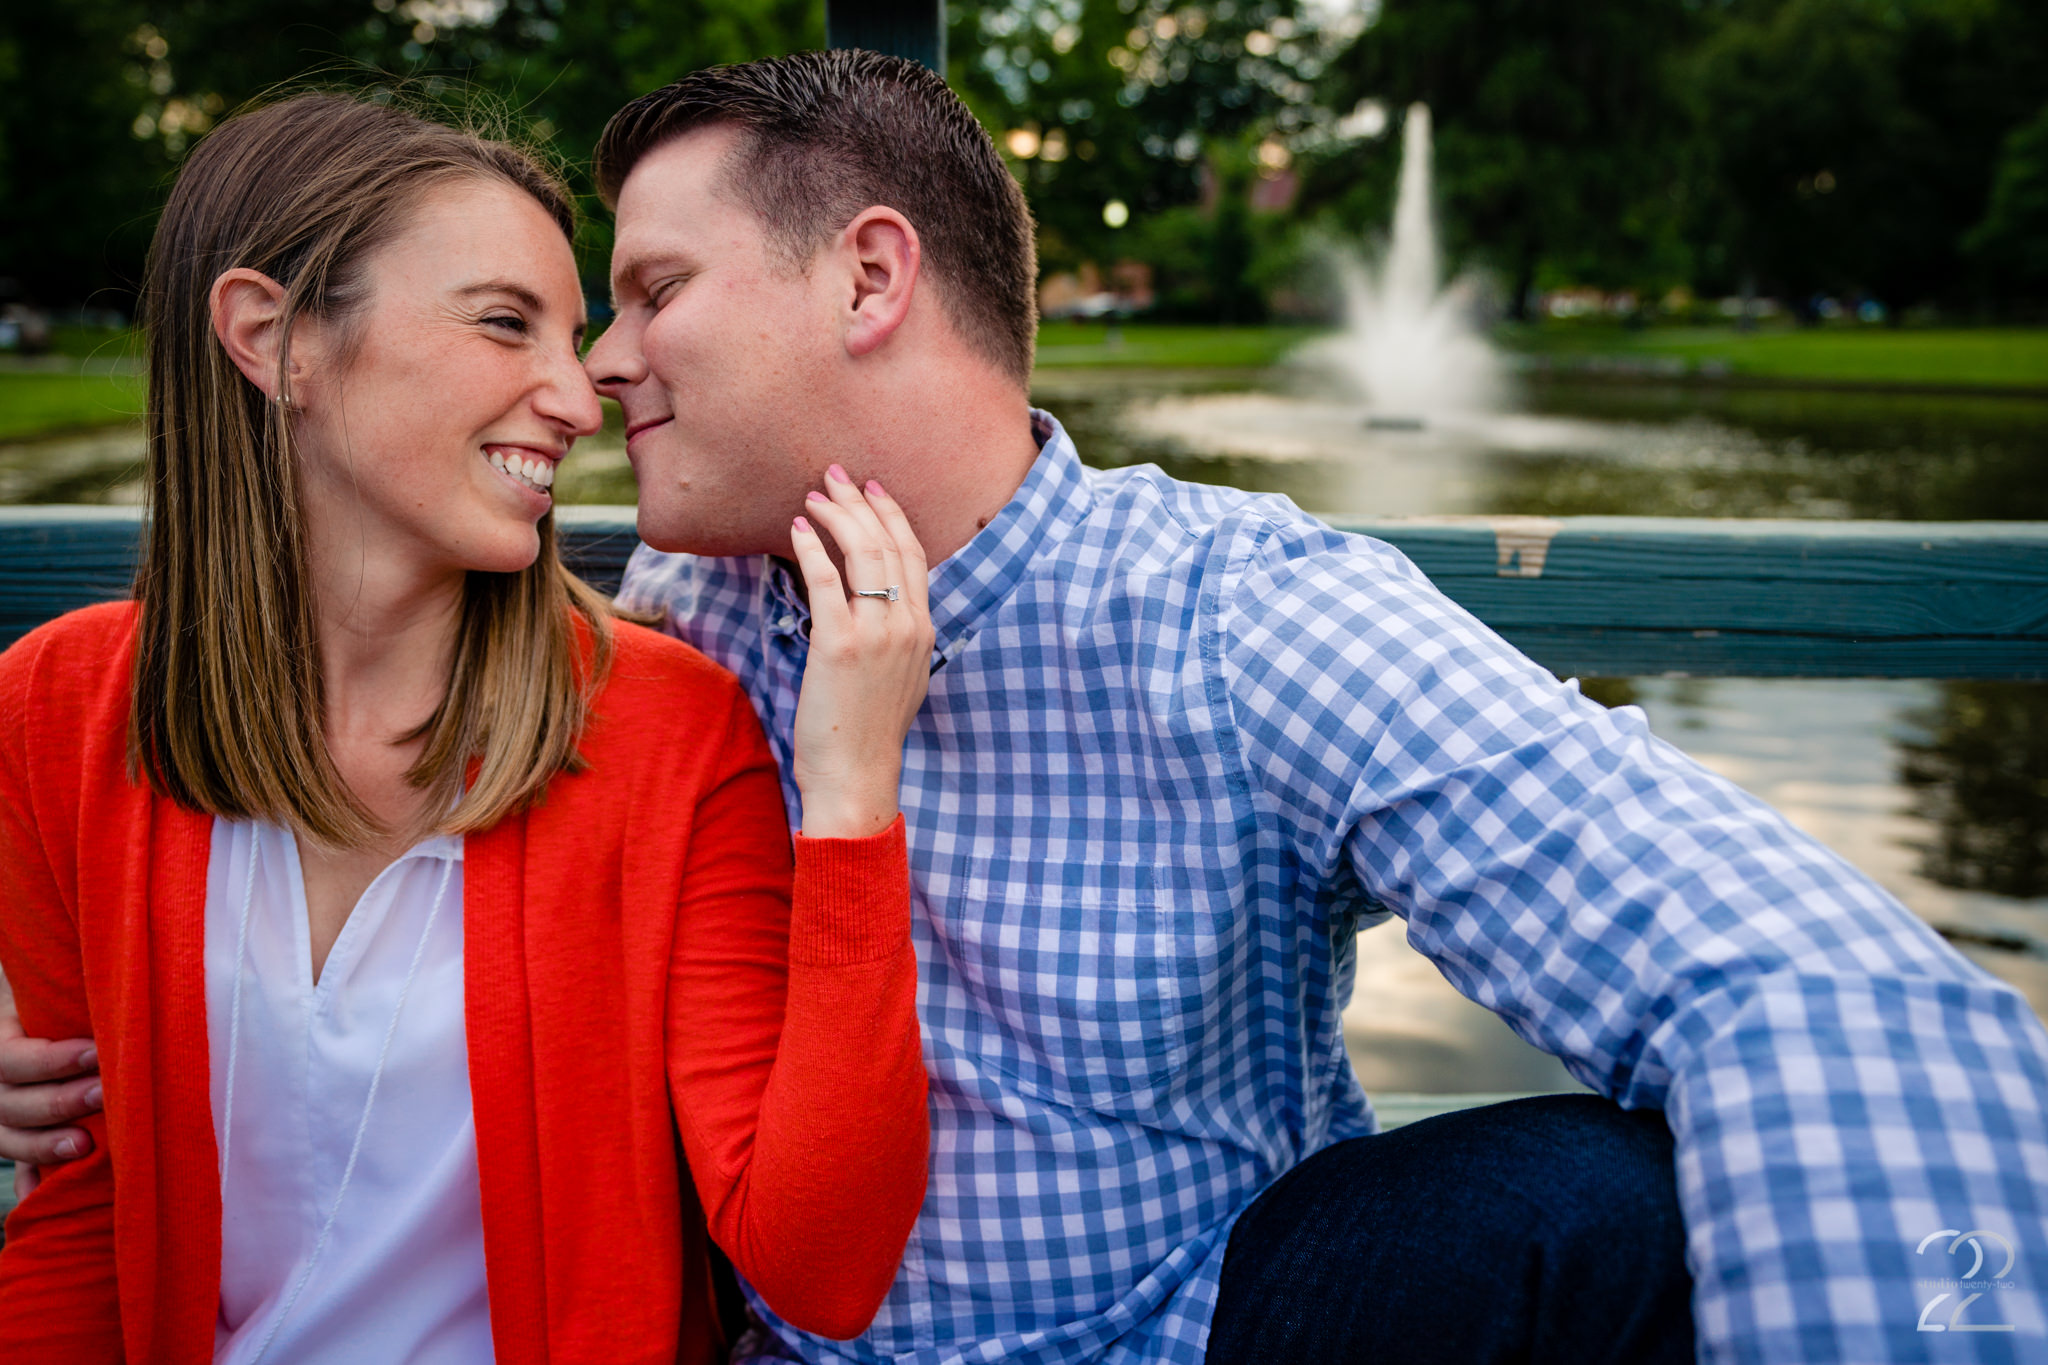 Engagement photography is one of those times where the closer you are the better, even in public places. These two snuggled up real close at North Bank Park in Columbus for some loving and real portraits.